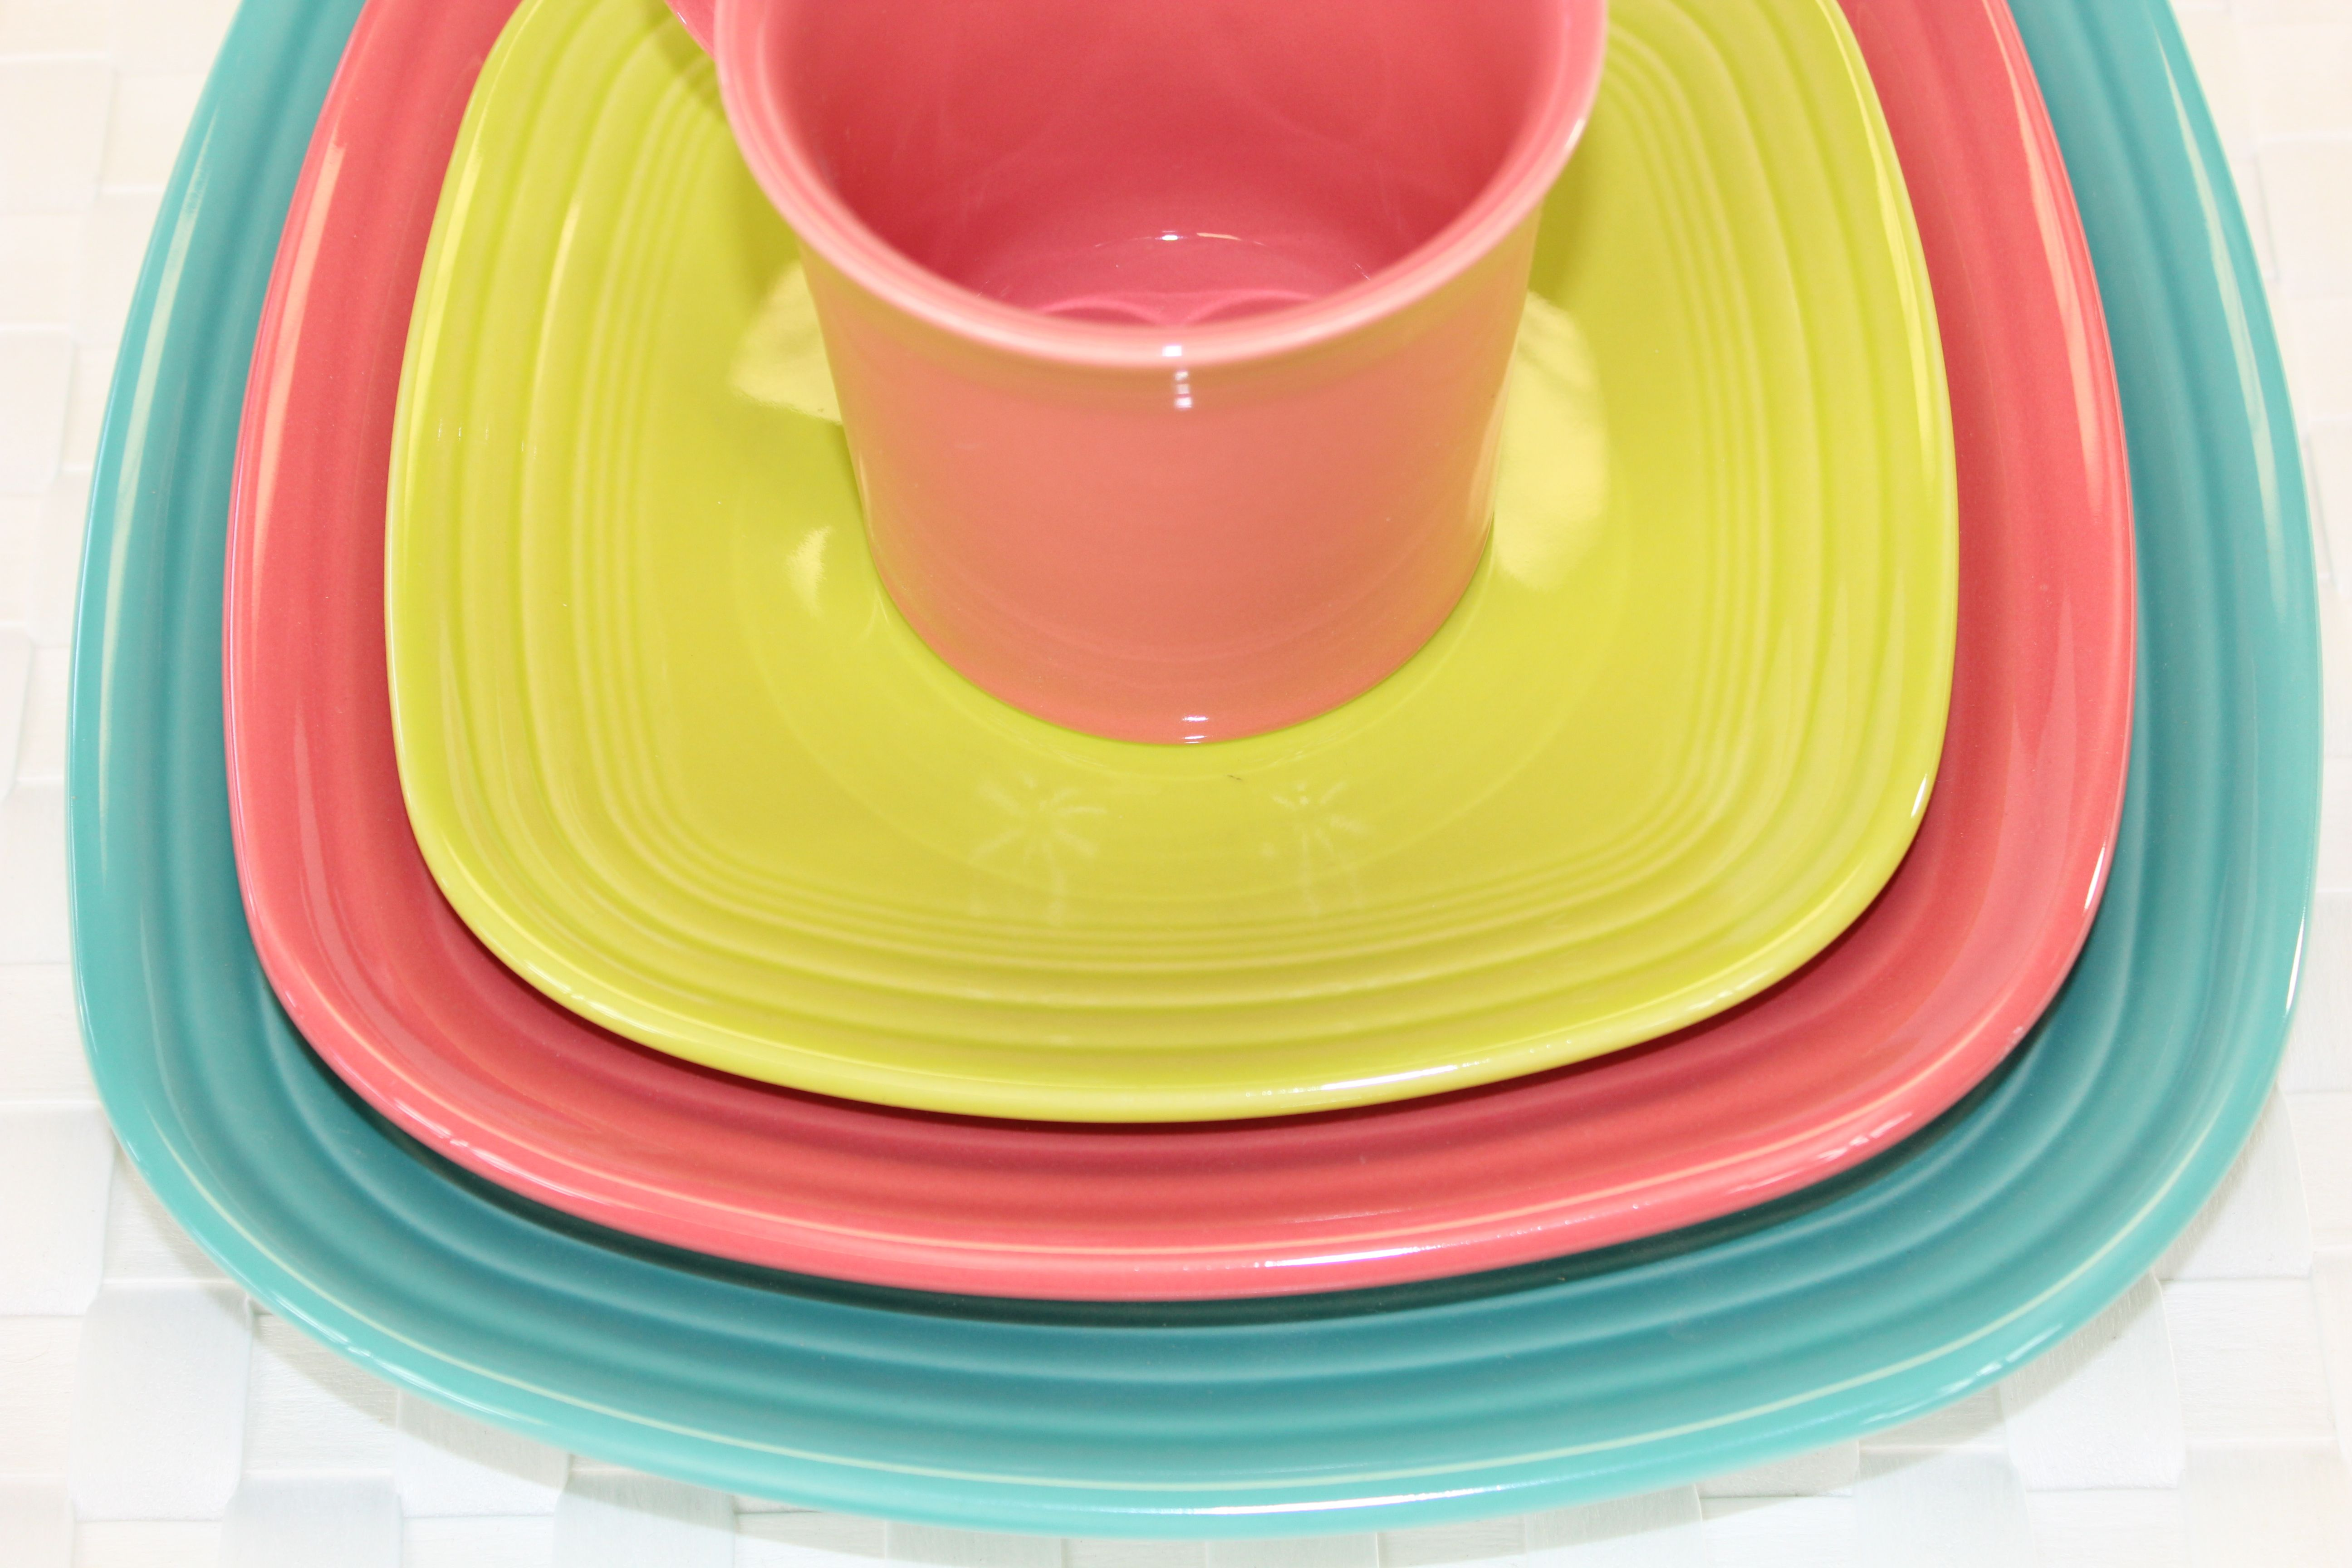 Square Fiesta® Plates in Lemongrass Flamingo and Turquoise. Made by Homer Laughlin China & Square Fiesta® Plates in Lemongrass Flamingo and Turquoise. Made by ...